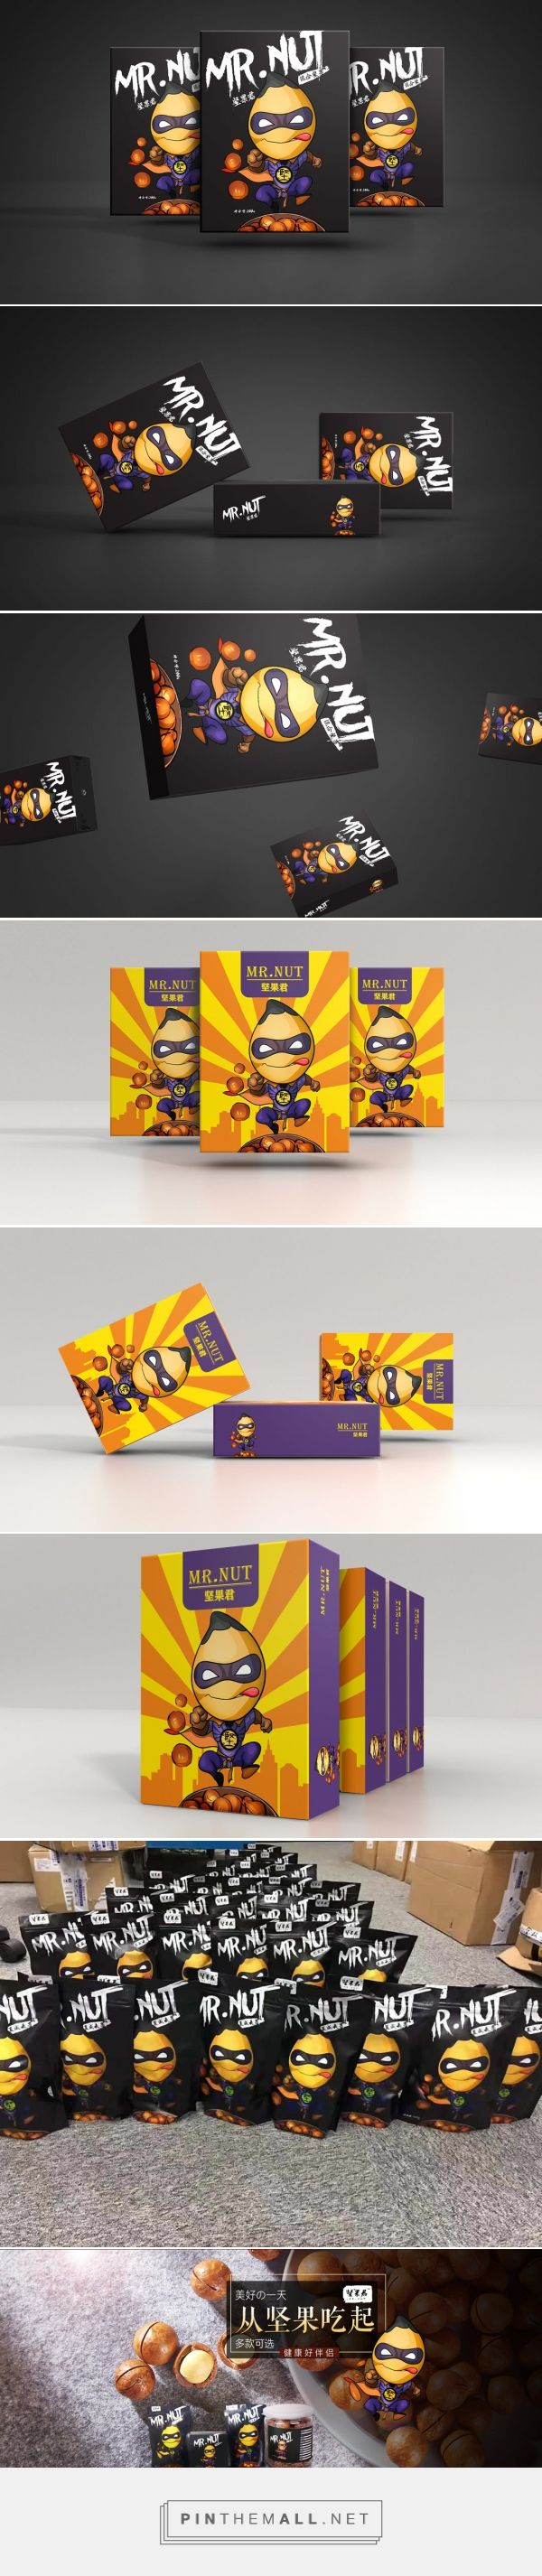 Nut king - Packaging of the World - Creative Package Design Gallery - http://www.packagingoftheworld.com/2017/09/nut-king.html